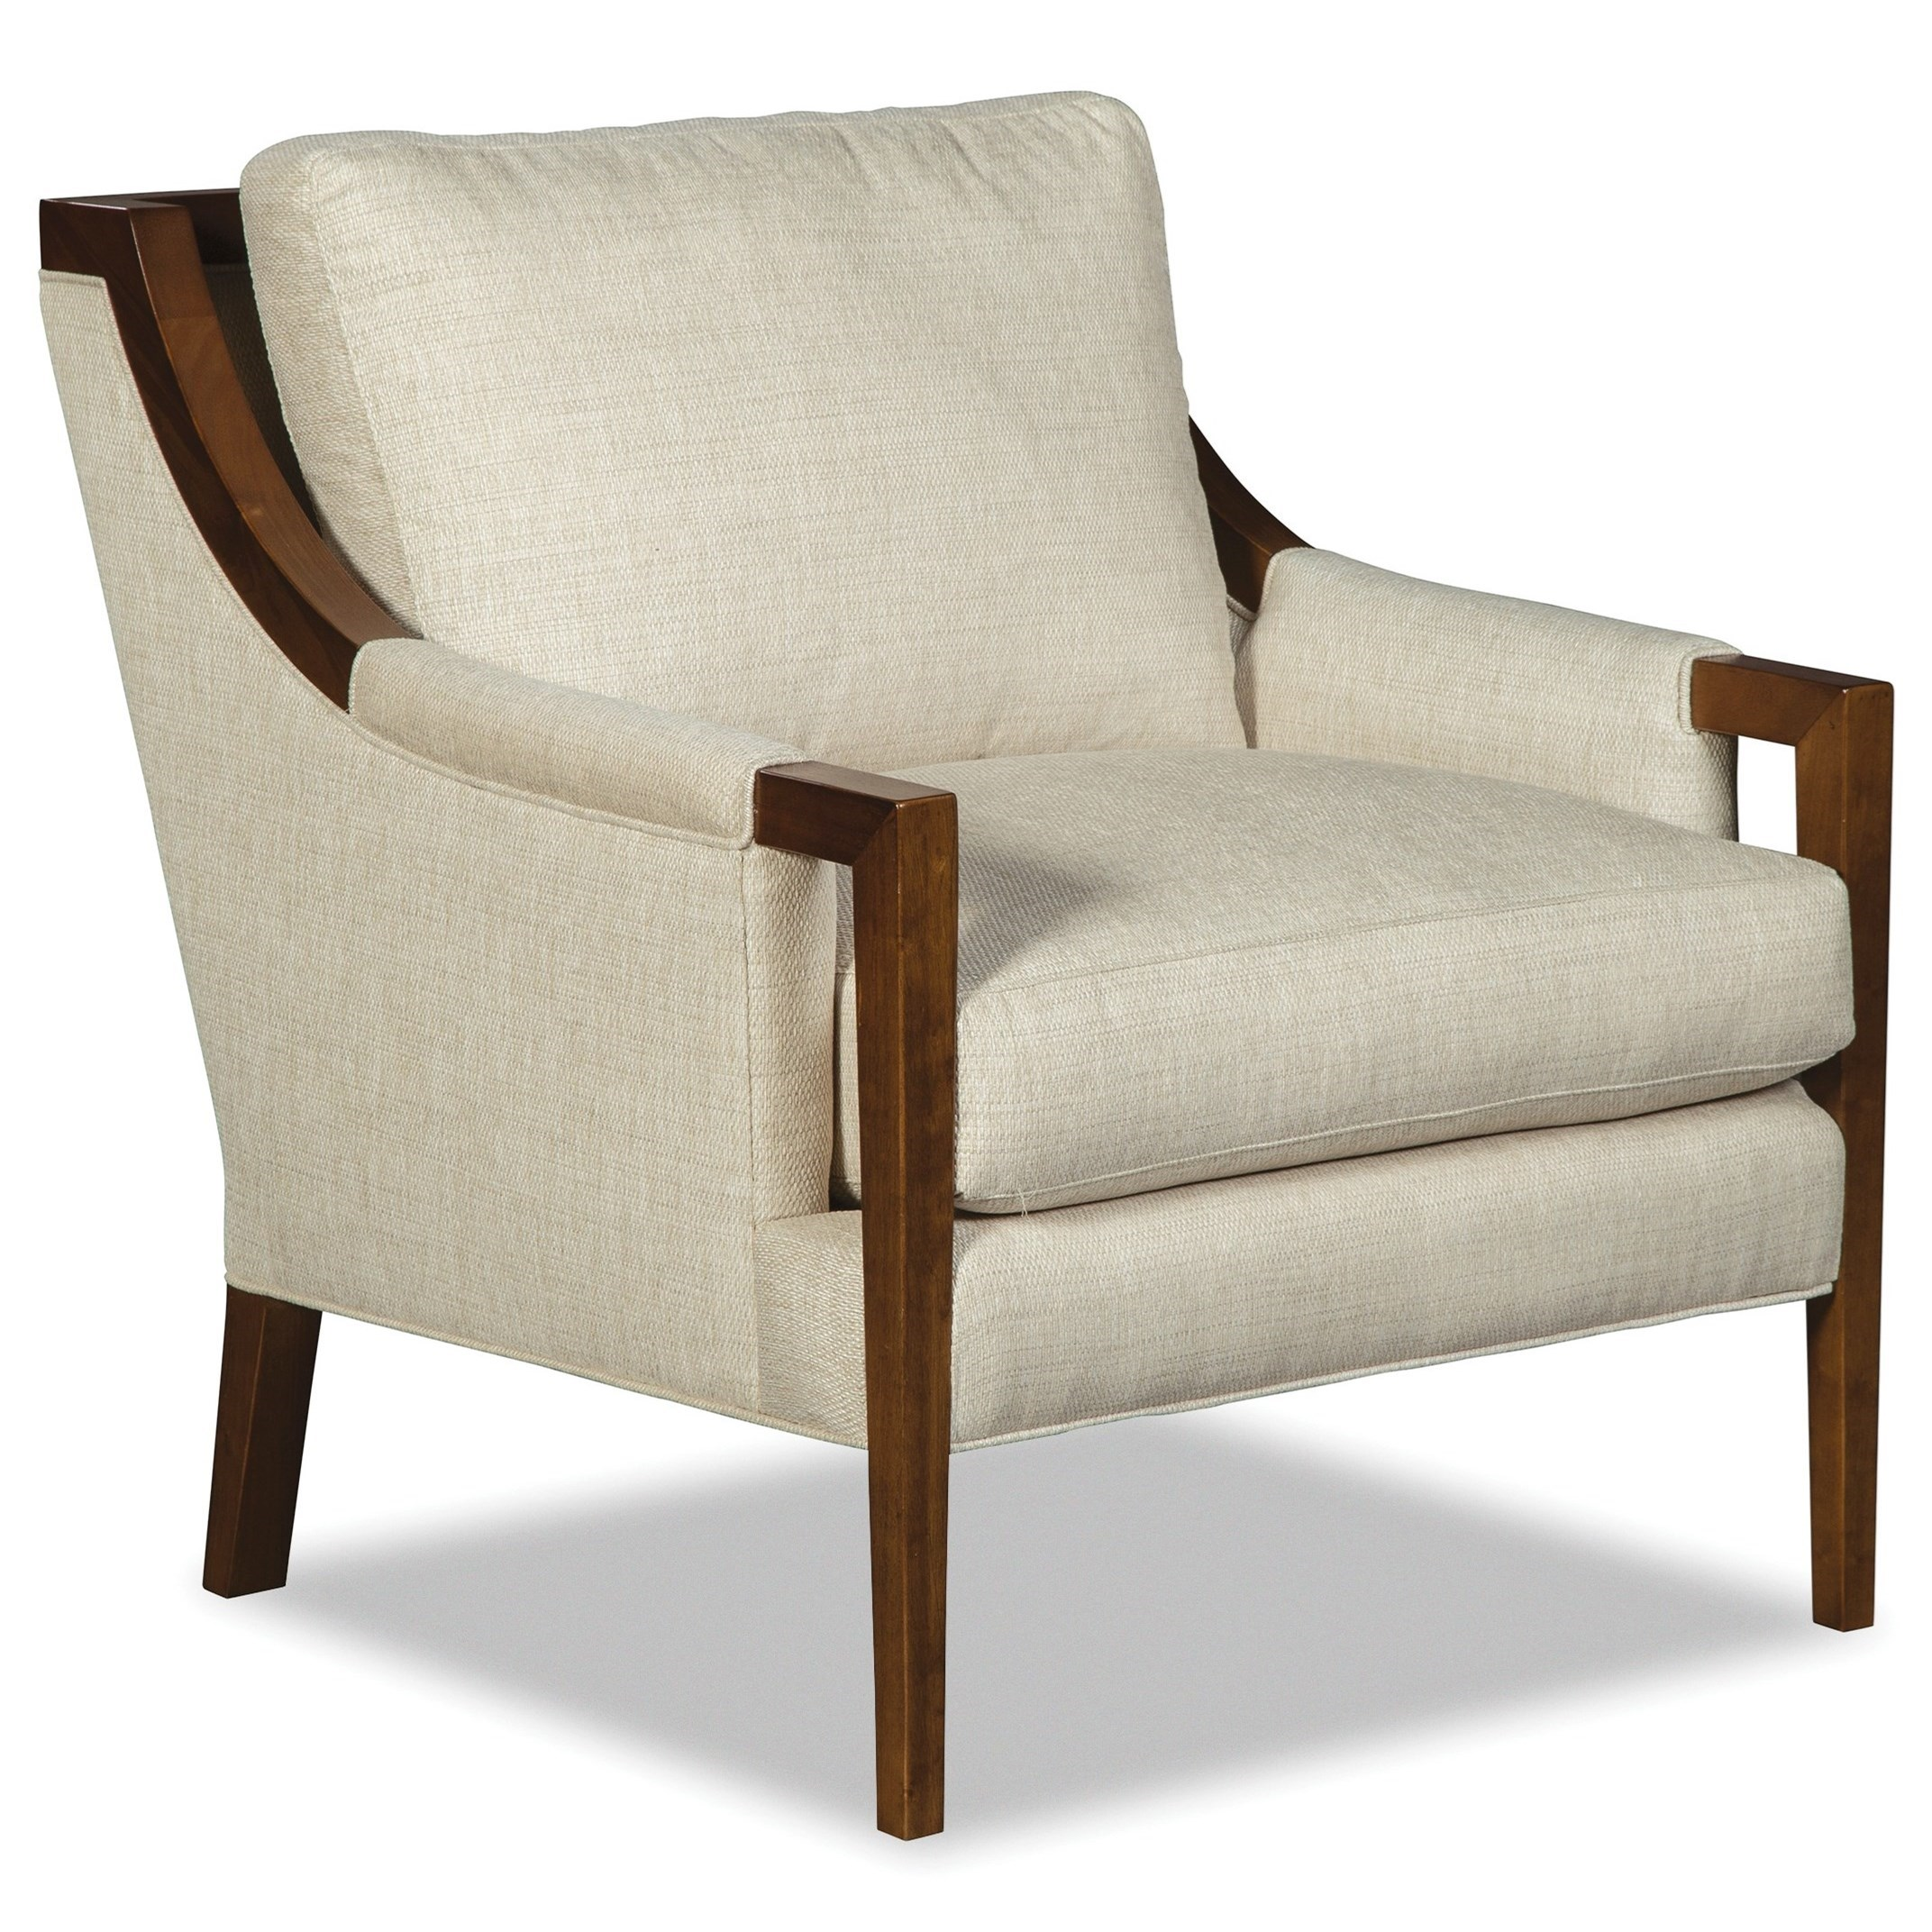 002910BD Wood Accent Chair by Hickory Craft at Godby Home Furnishings